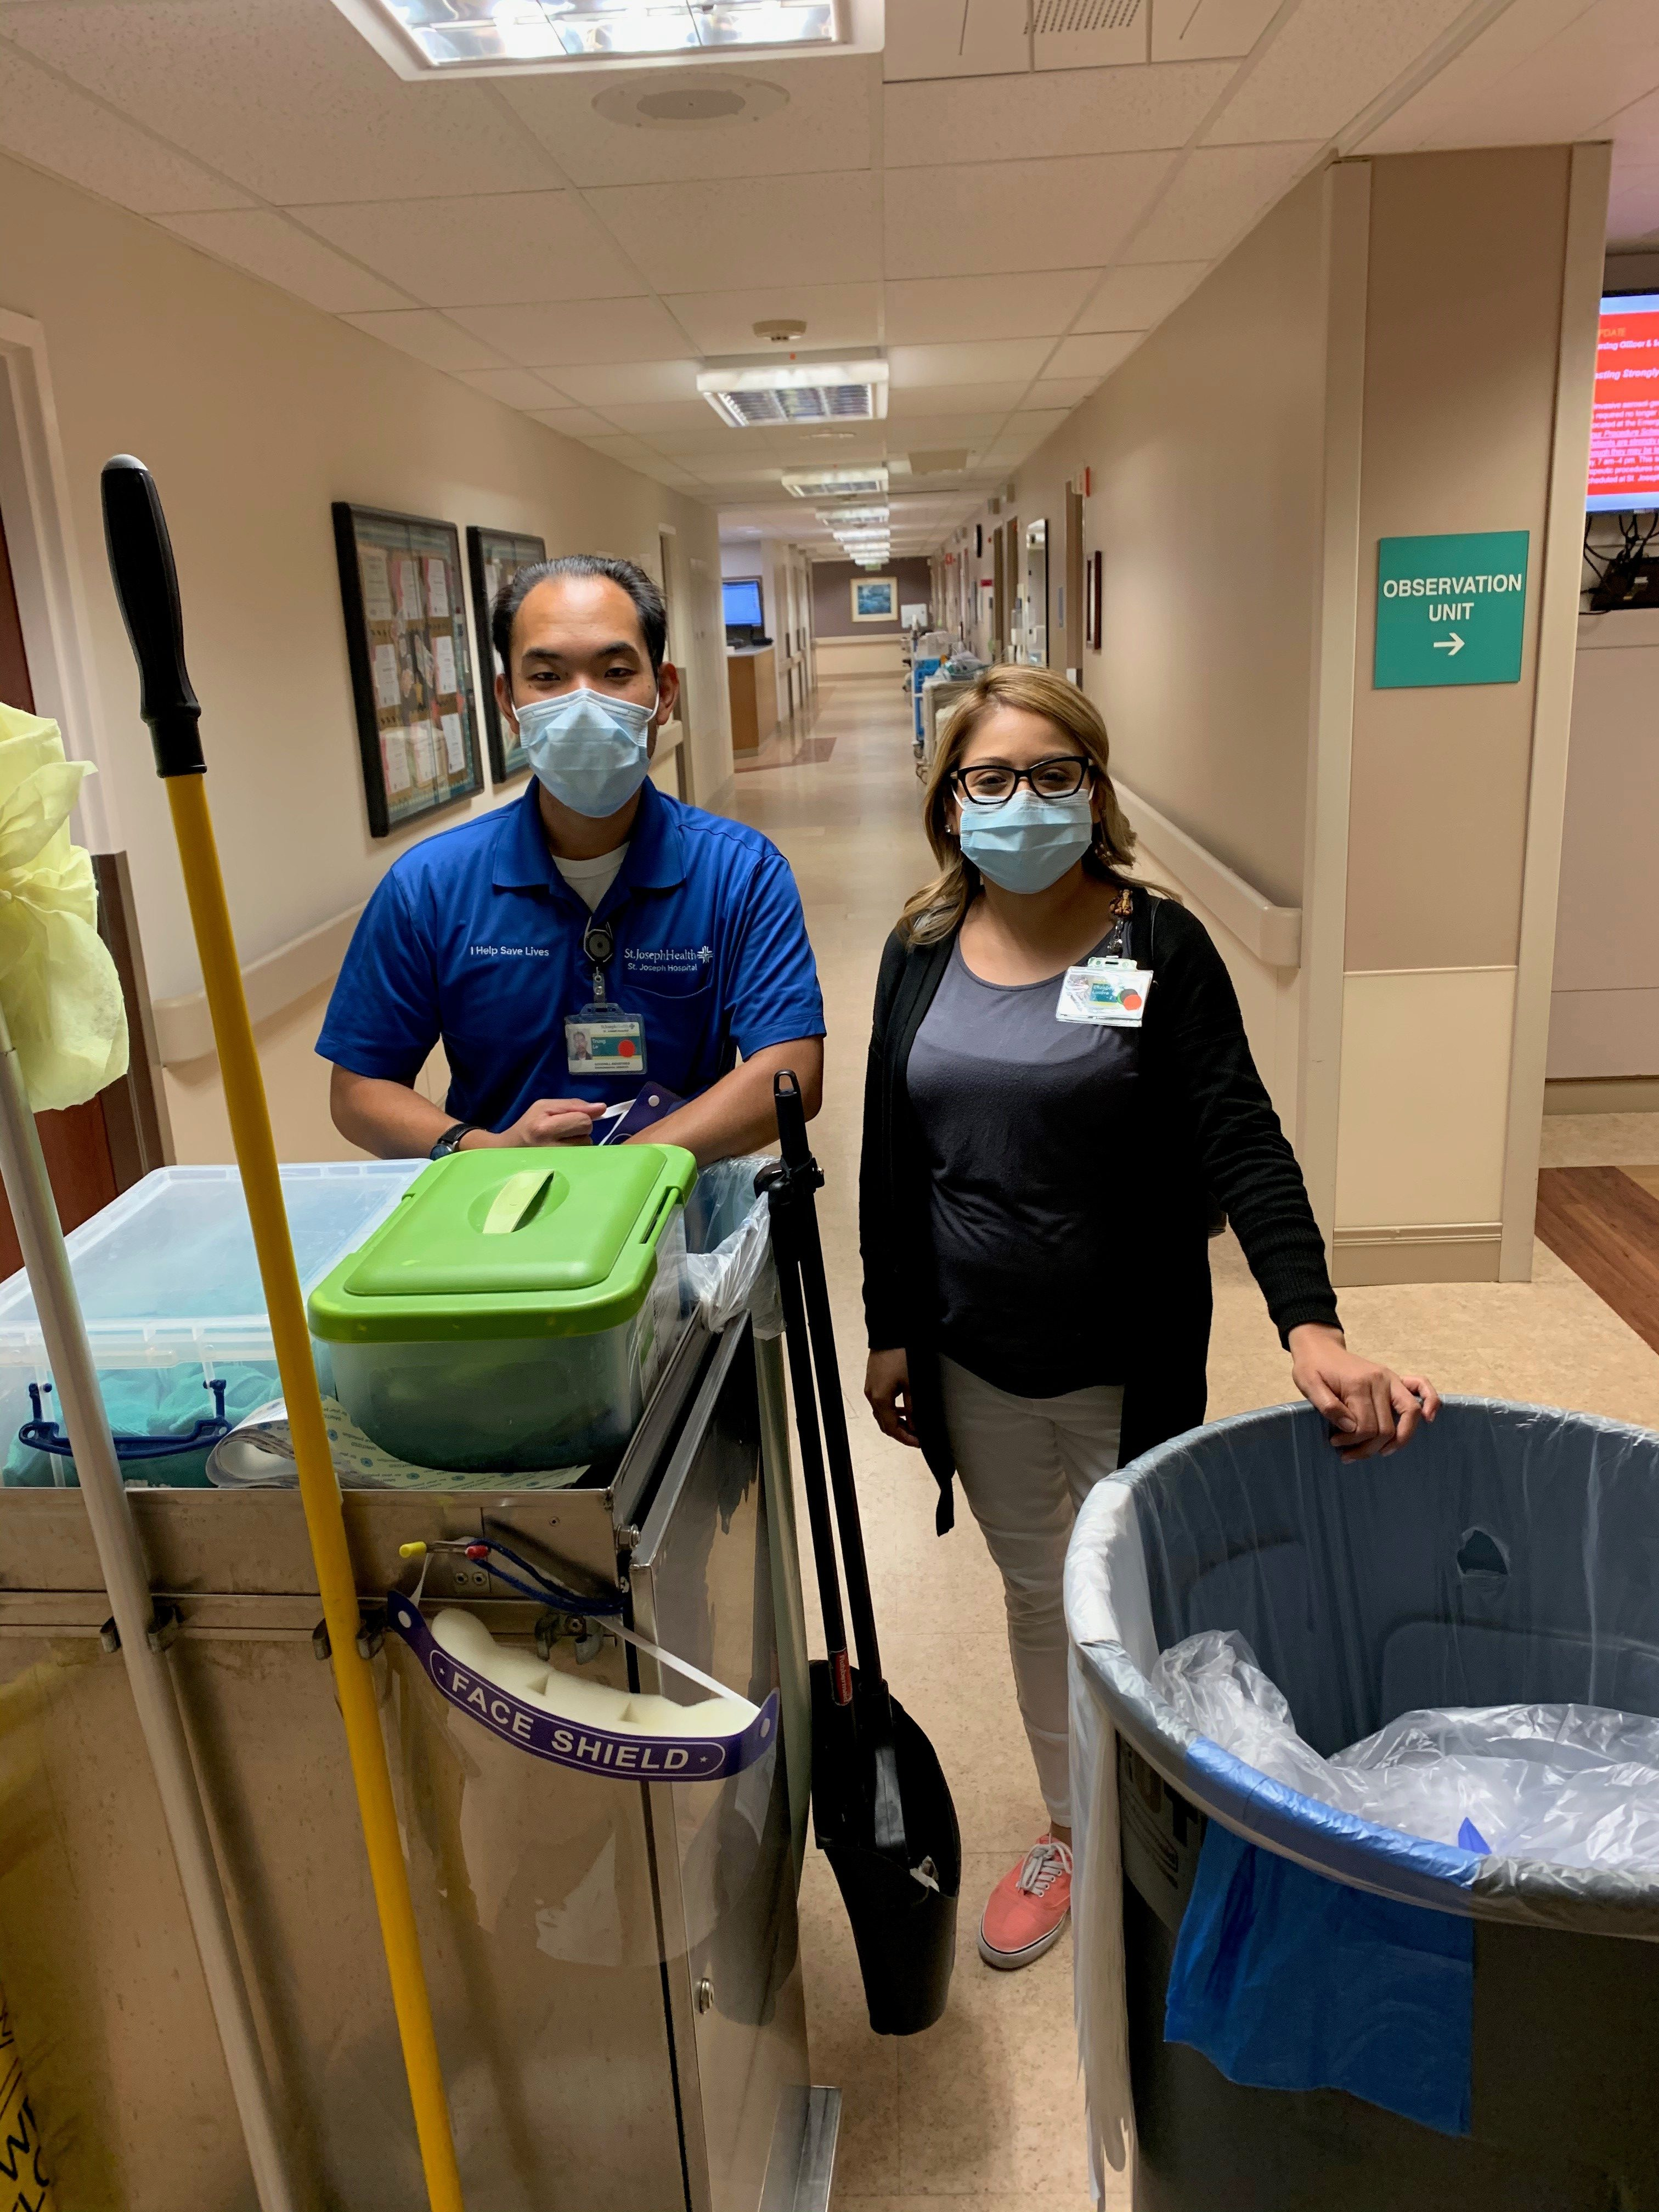 Male and female workers with cleaning equipment at a hospital corridor